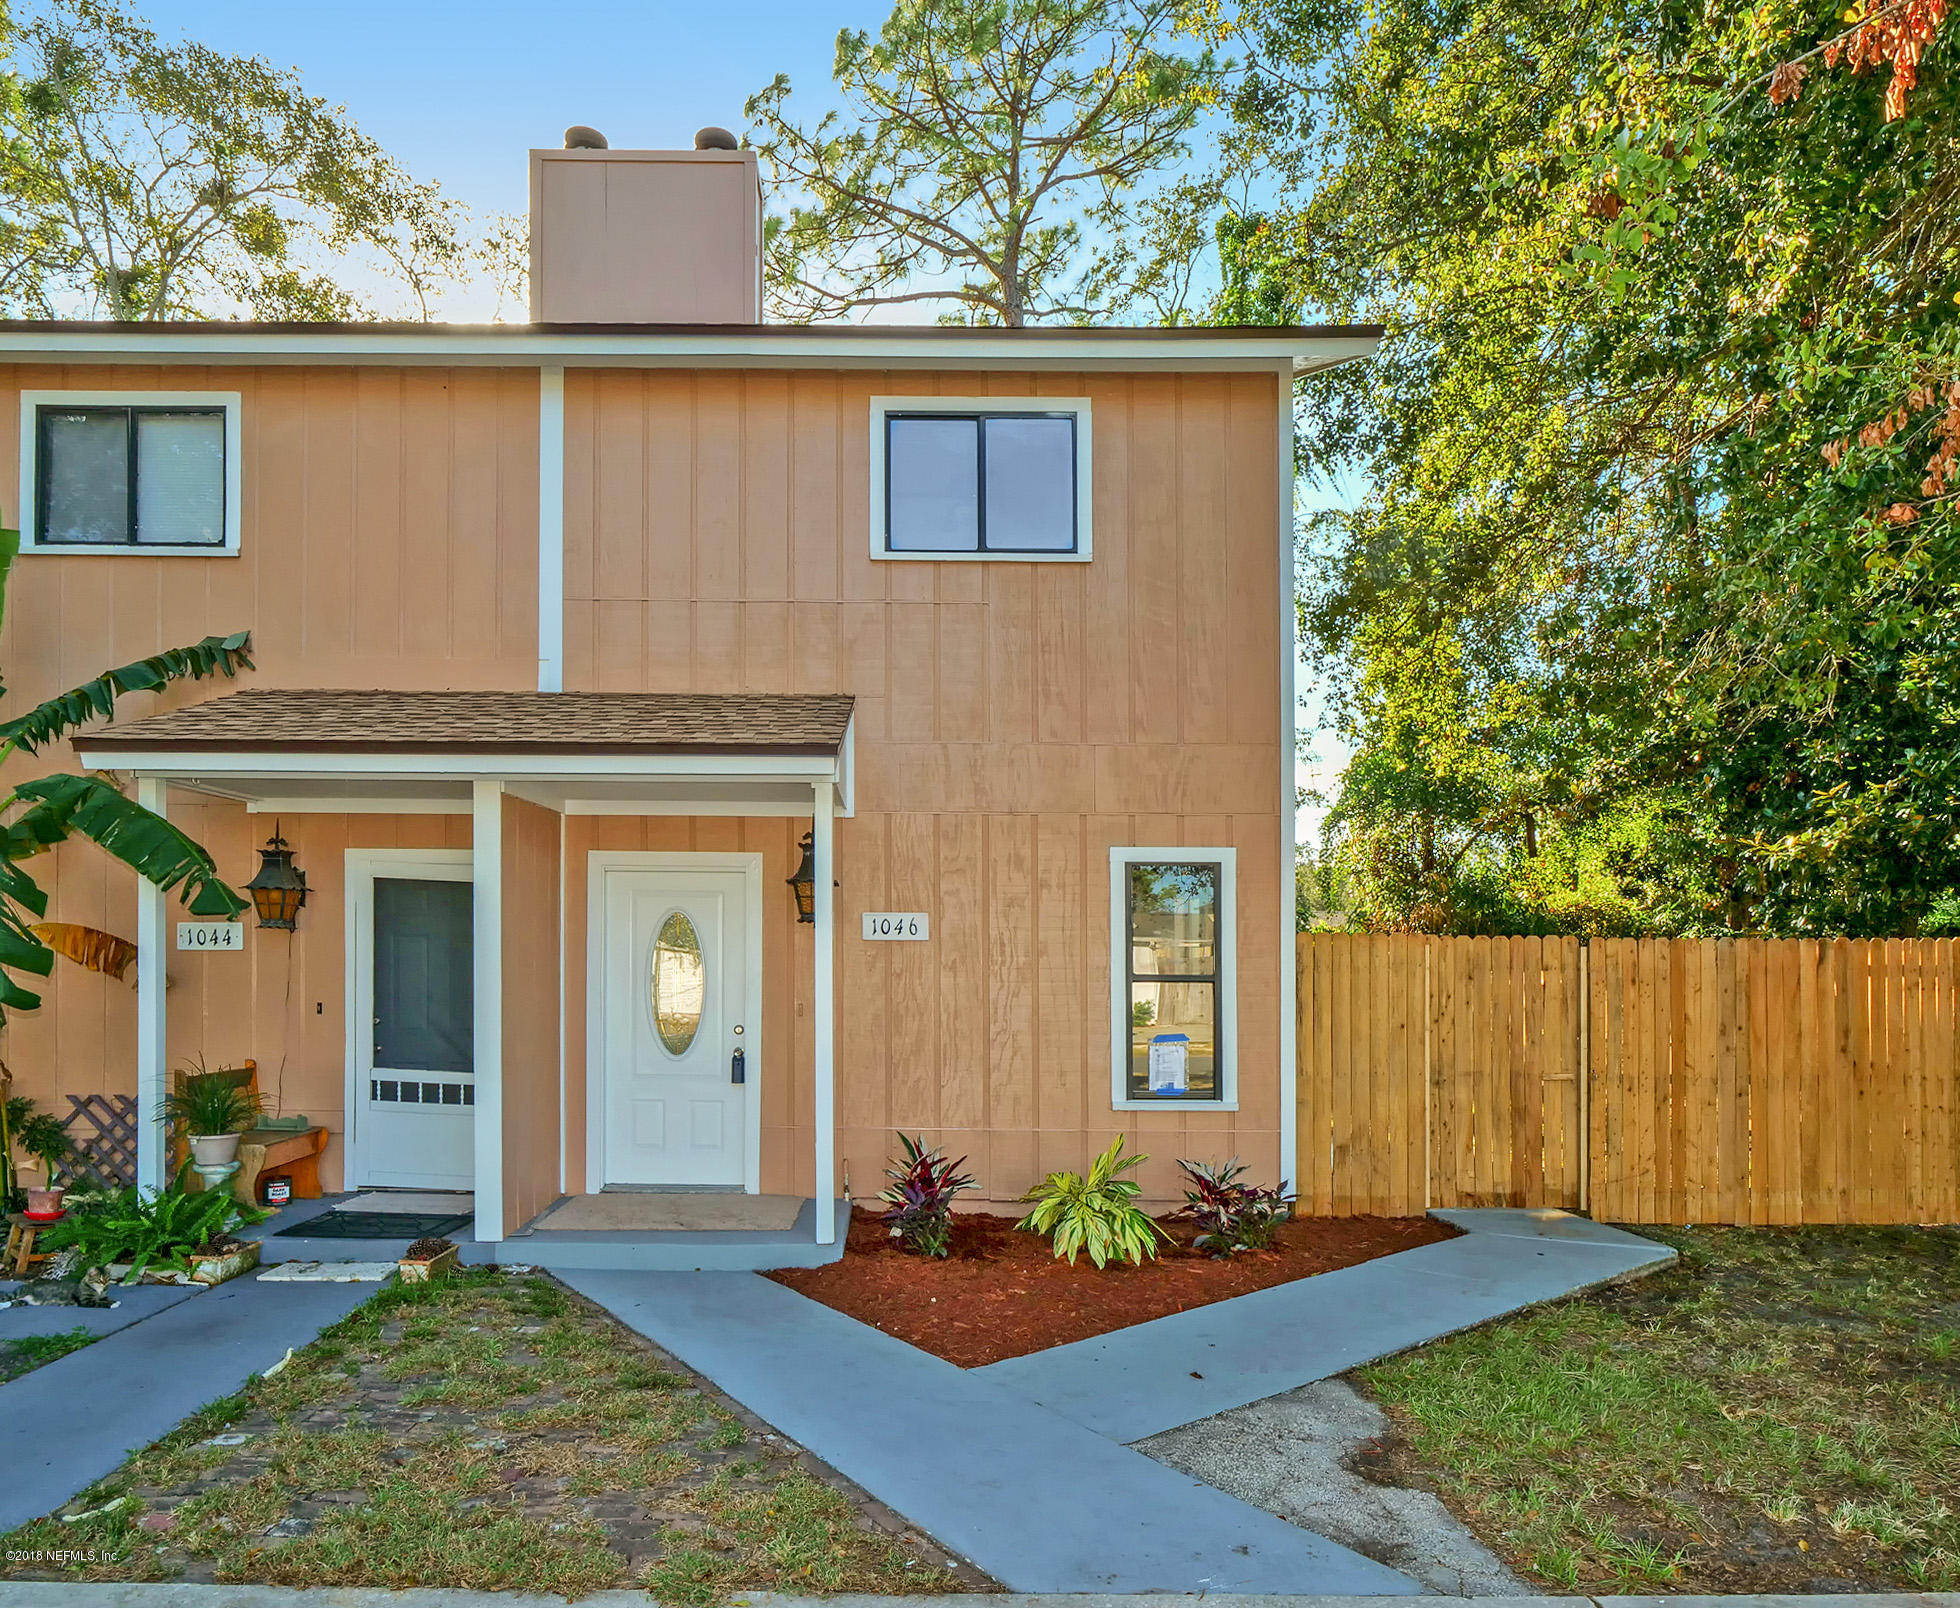 1046 HIBISCUS, ATLANTIC BEACH, FLORIDA 32233, 2 Bedrooms Bedrooms, ,1 BathroomBathrooms,Residential - townhome,For sale,HIBISCUS,959824